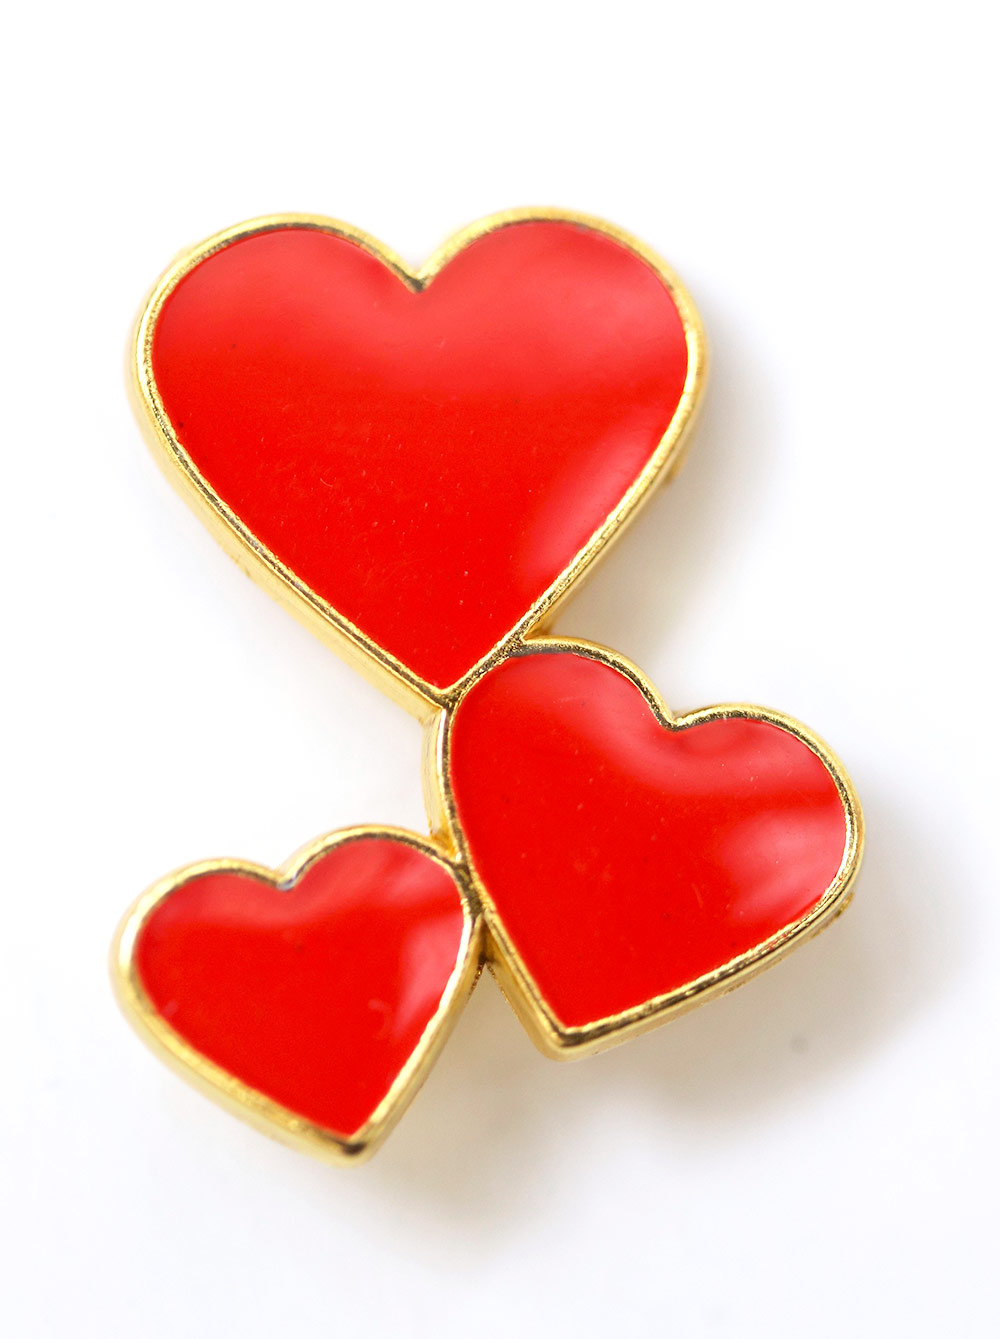 sephora beauty insider collectible pins hearts